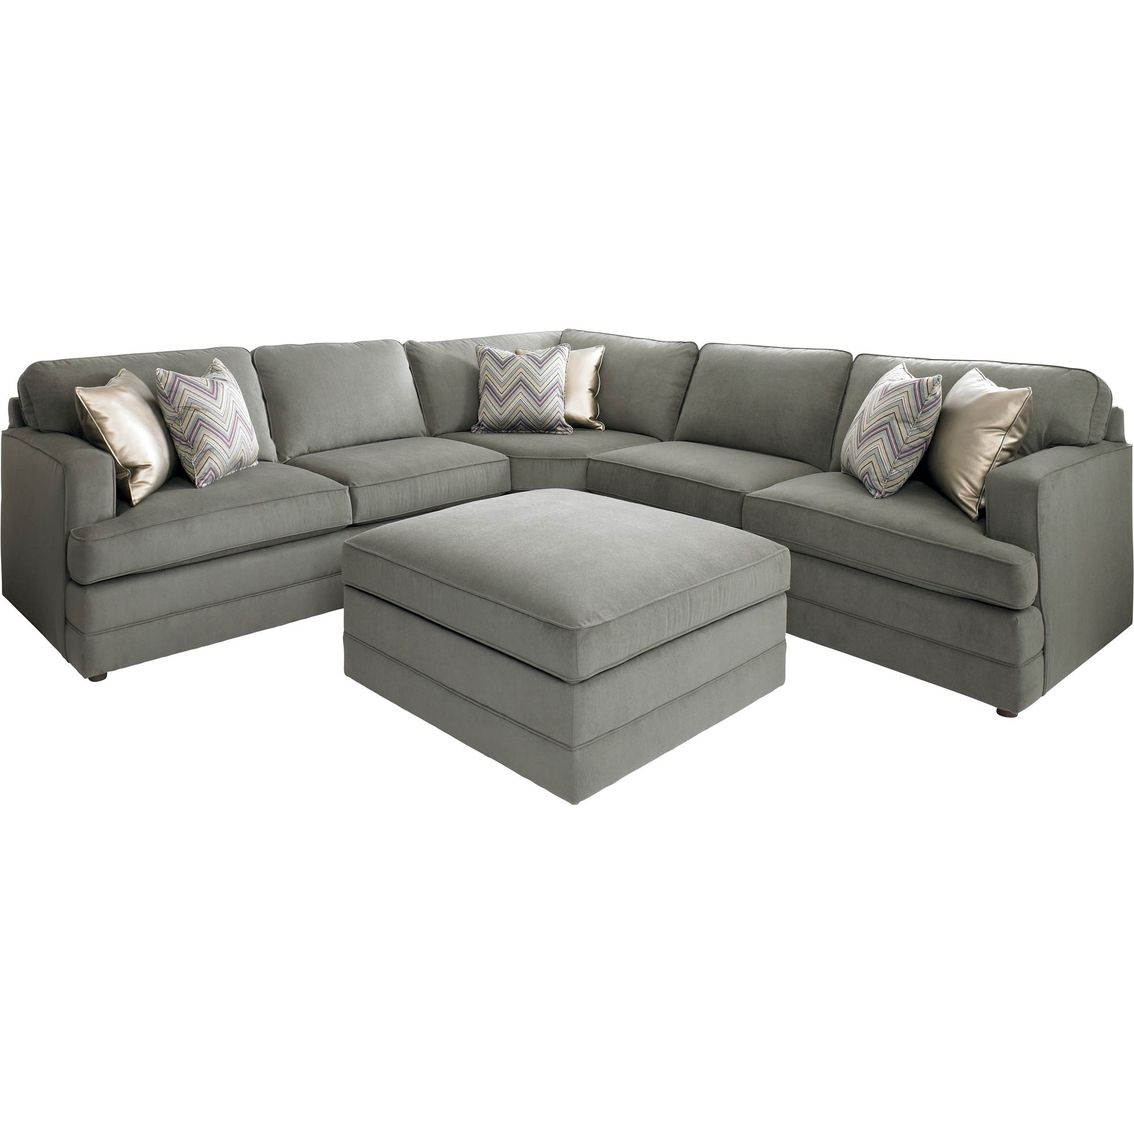 Sofa And Ottoman Salzburg Sectional Sleeper White Leather Bassett Dalton L Shaped With